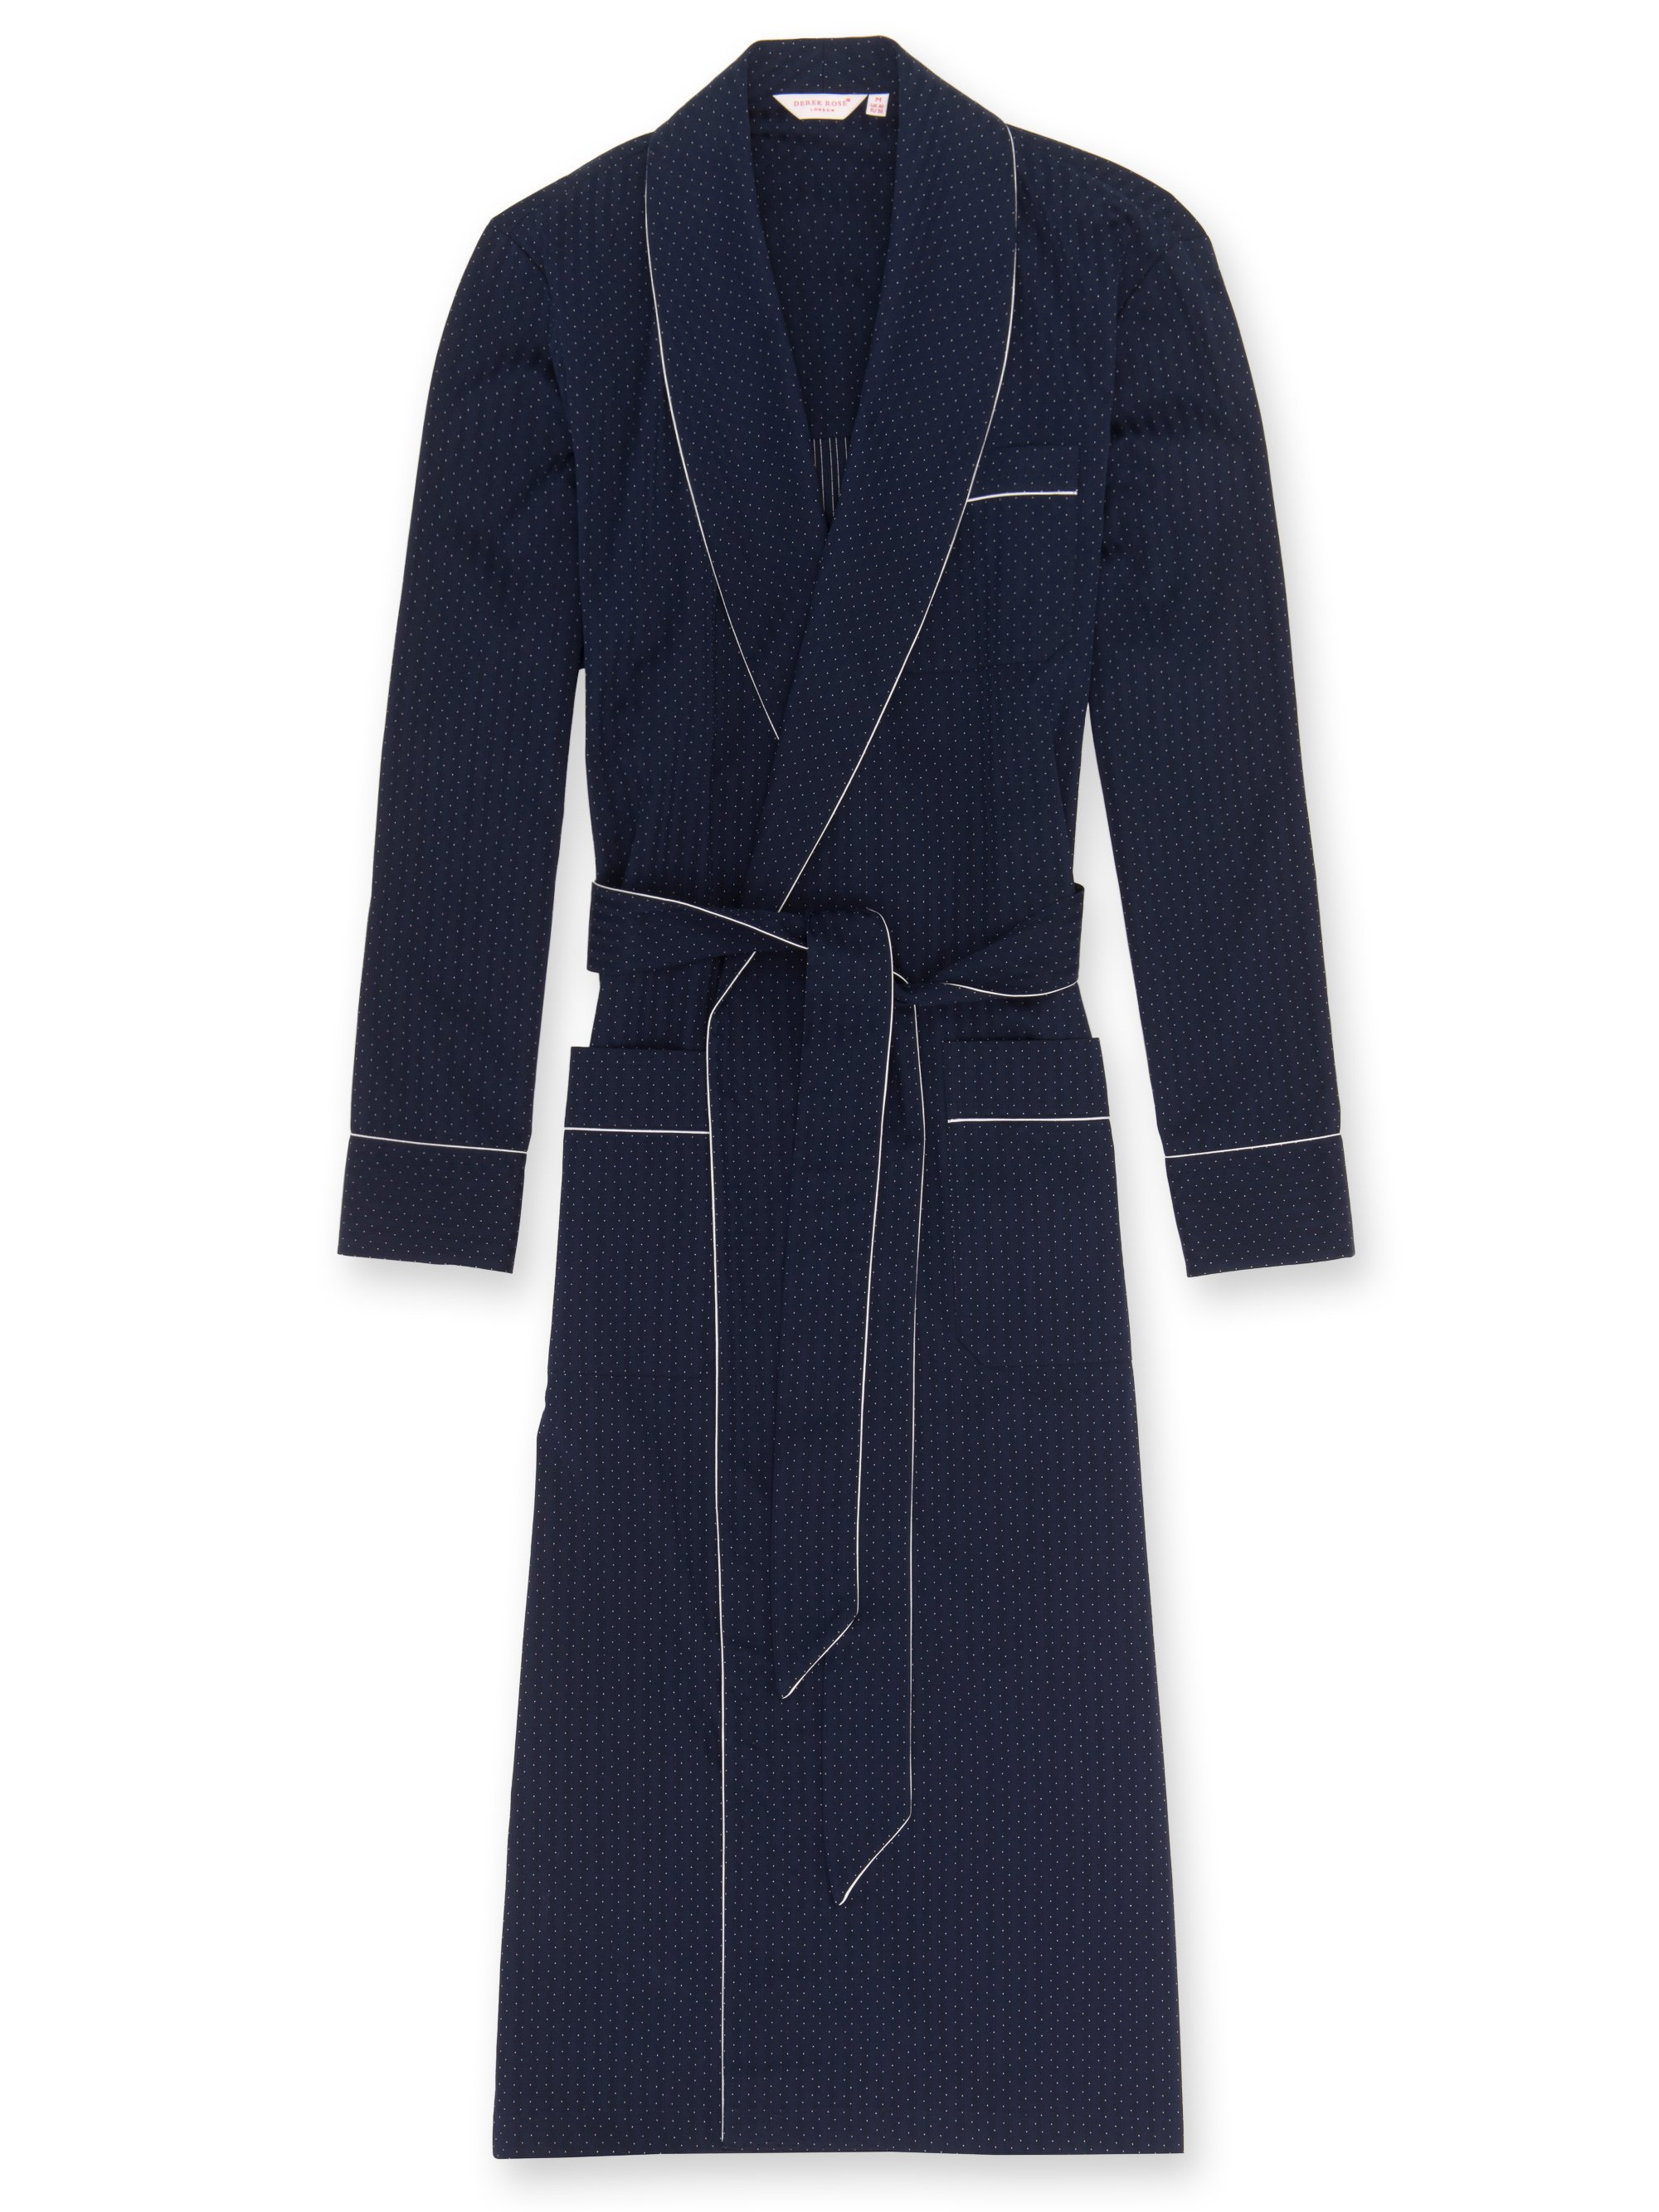 Men's Piped Dressing Gown Royal 40 Cotton Satin Stripe Navy